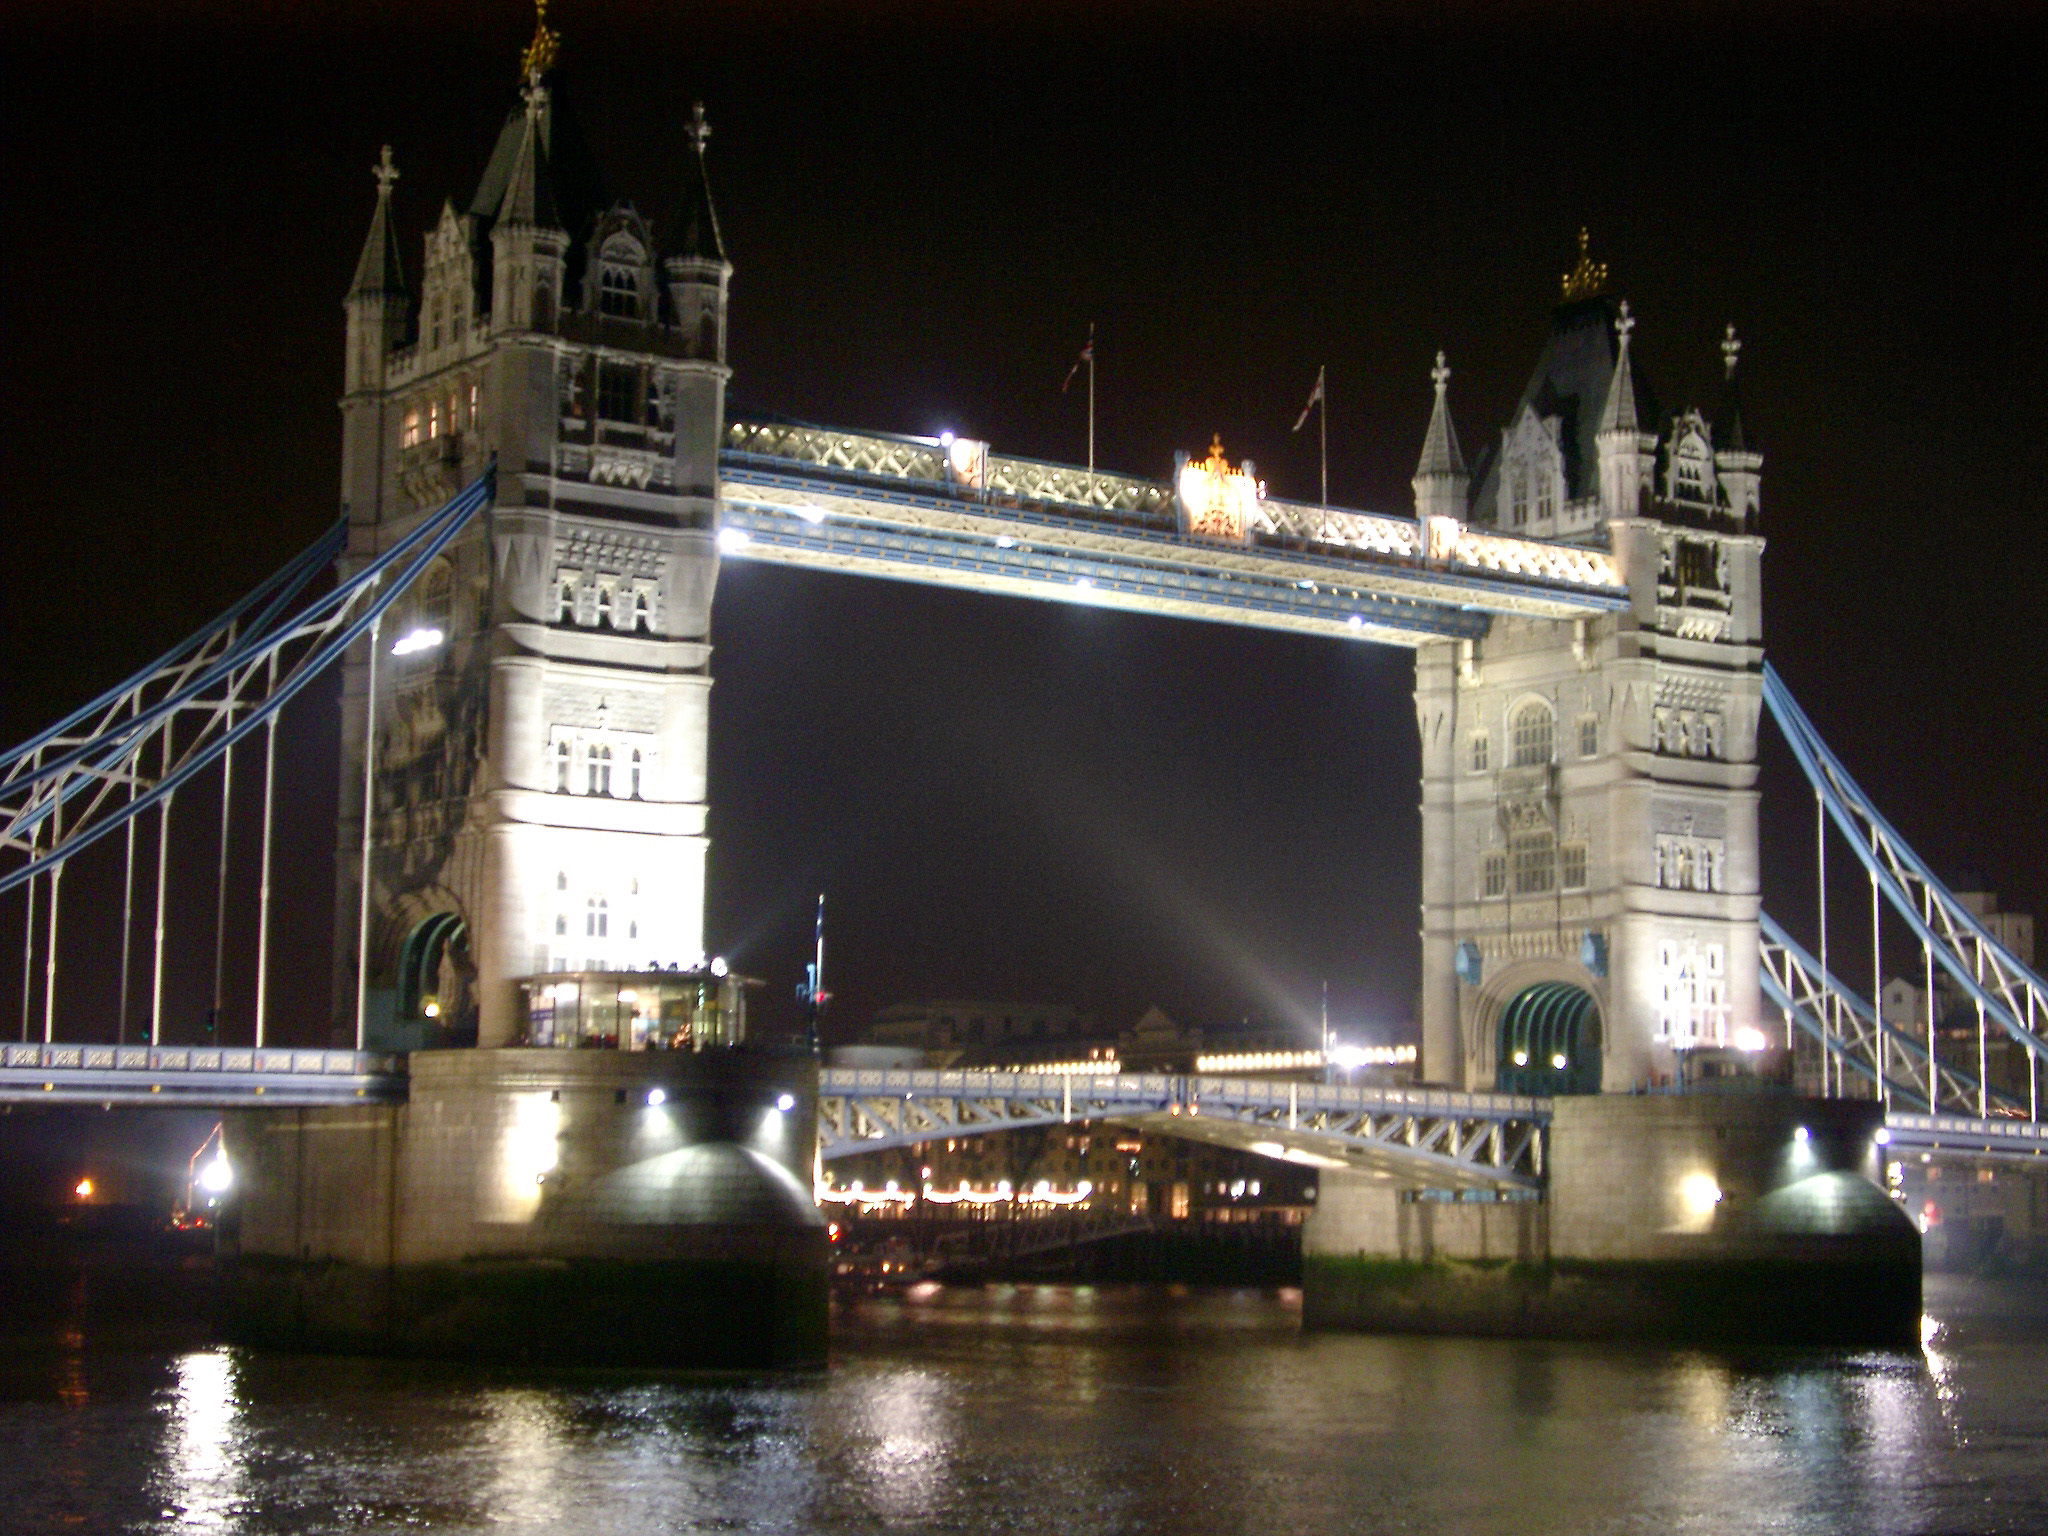 Tower Bridge, London, on the River Thames illuminated at night with the drawbridge down and reflections on the calm water